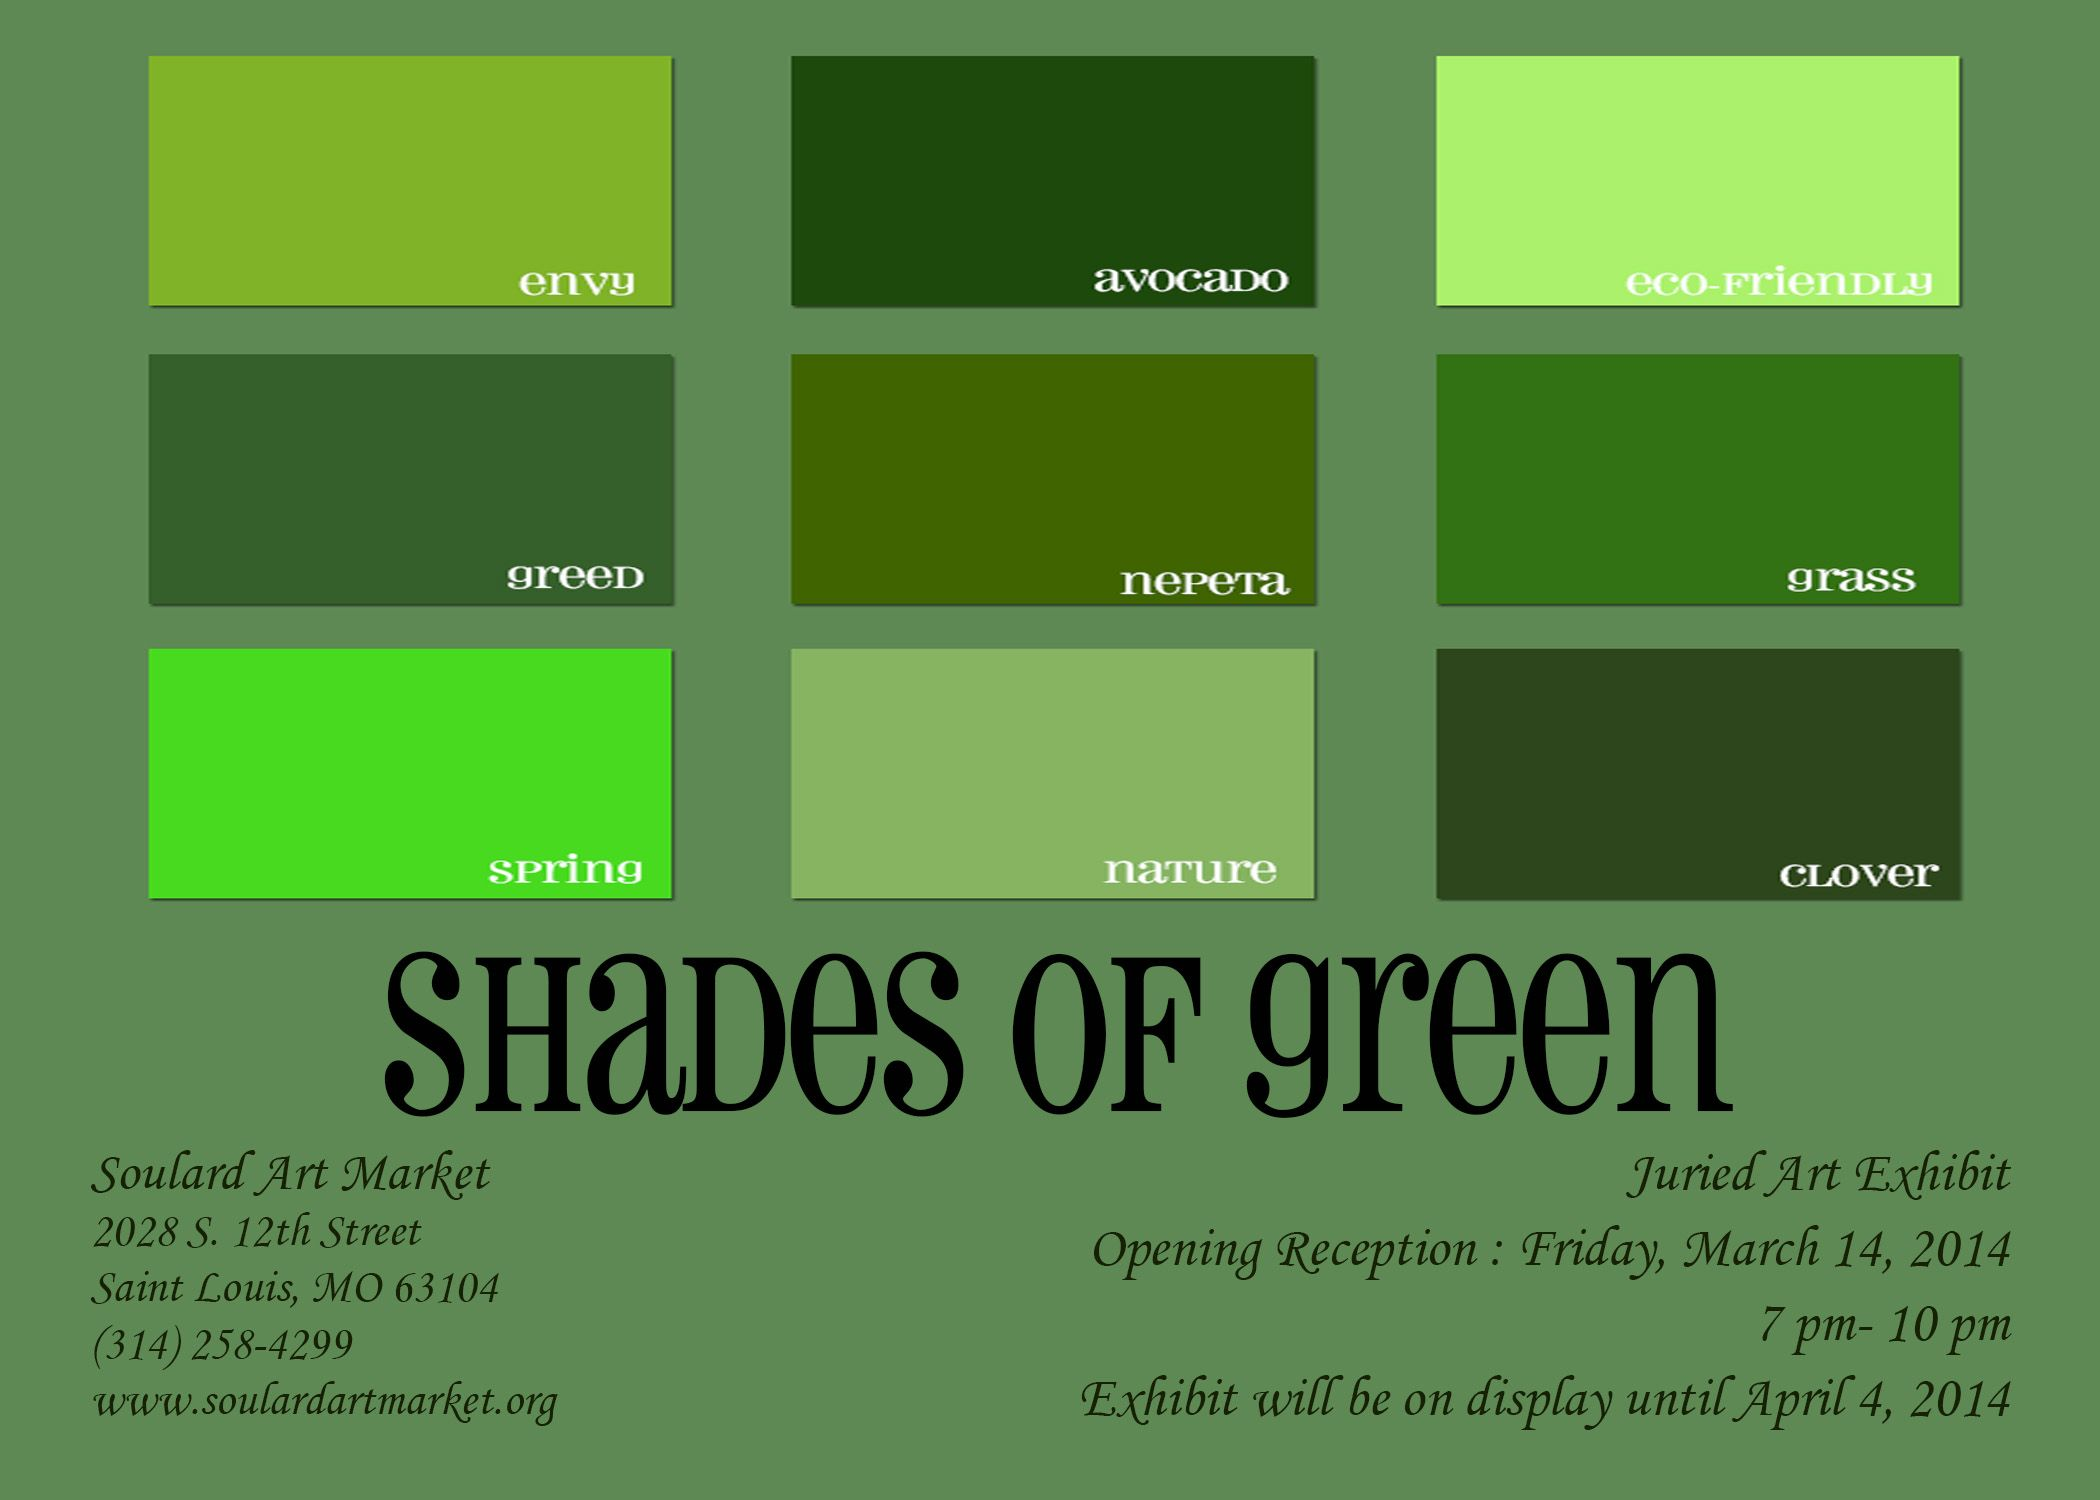 Shades of green packaging pinterest mud rooms shades of green nvjuhfo Choice Image